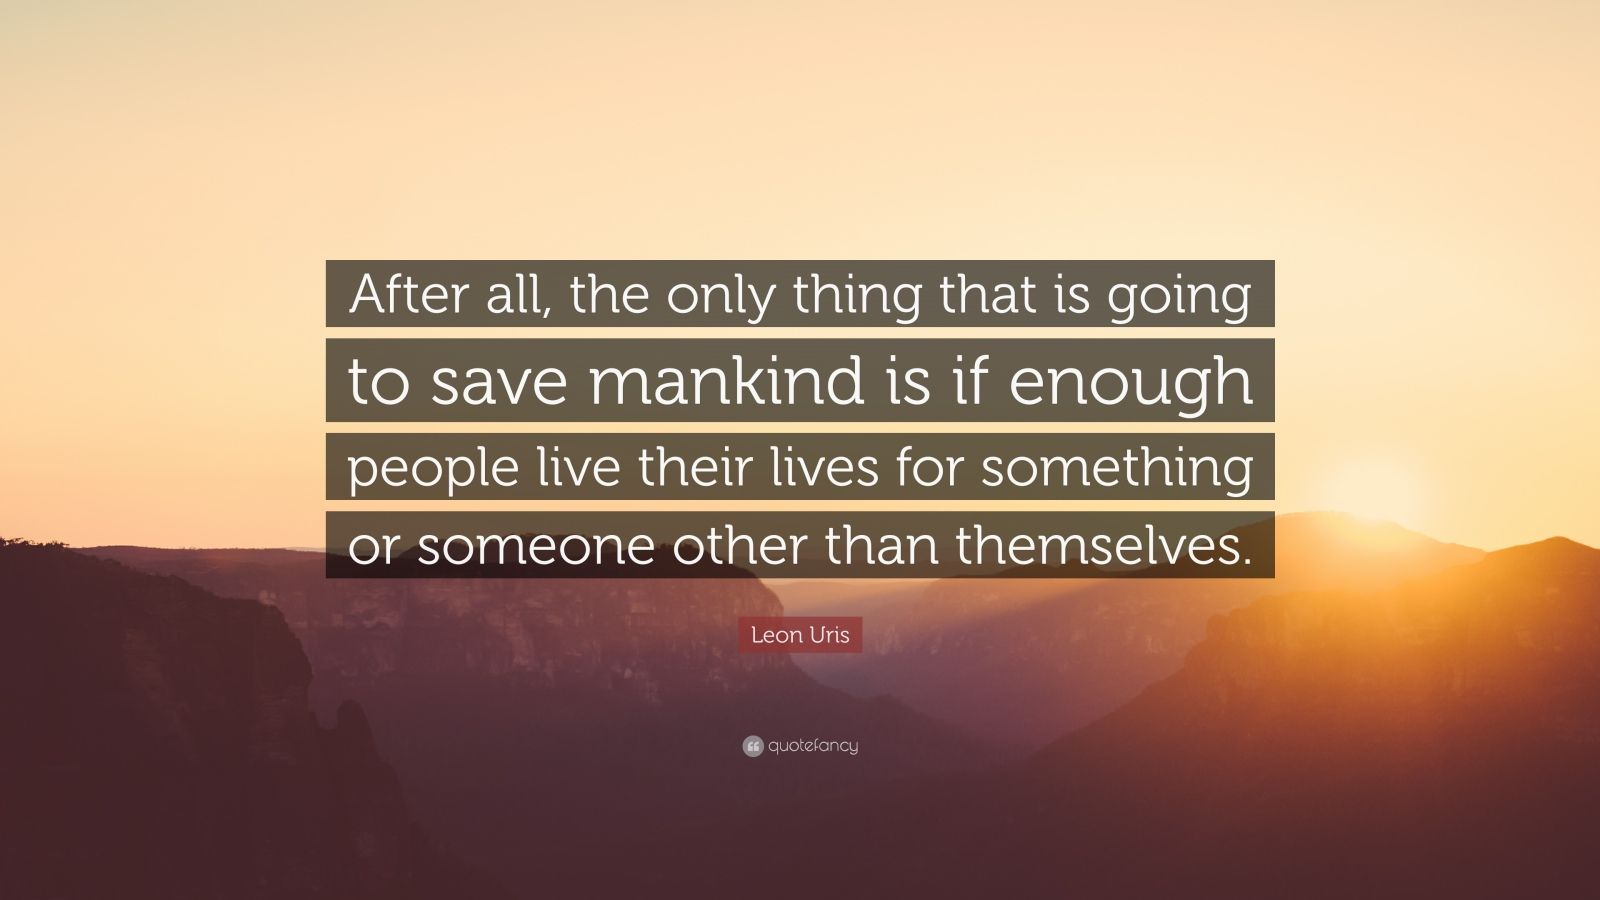 """Leon Uris Quote: """"After all, the only thing that is going to save mankind is if enough people live their lives for something or someone other than themselves."""""""